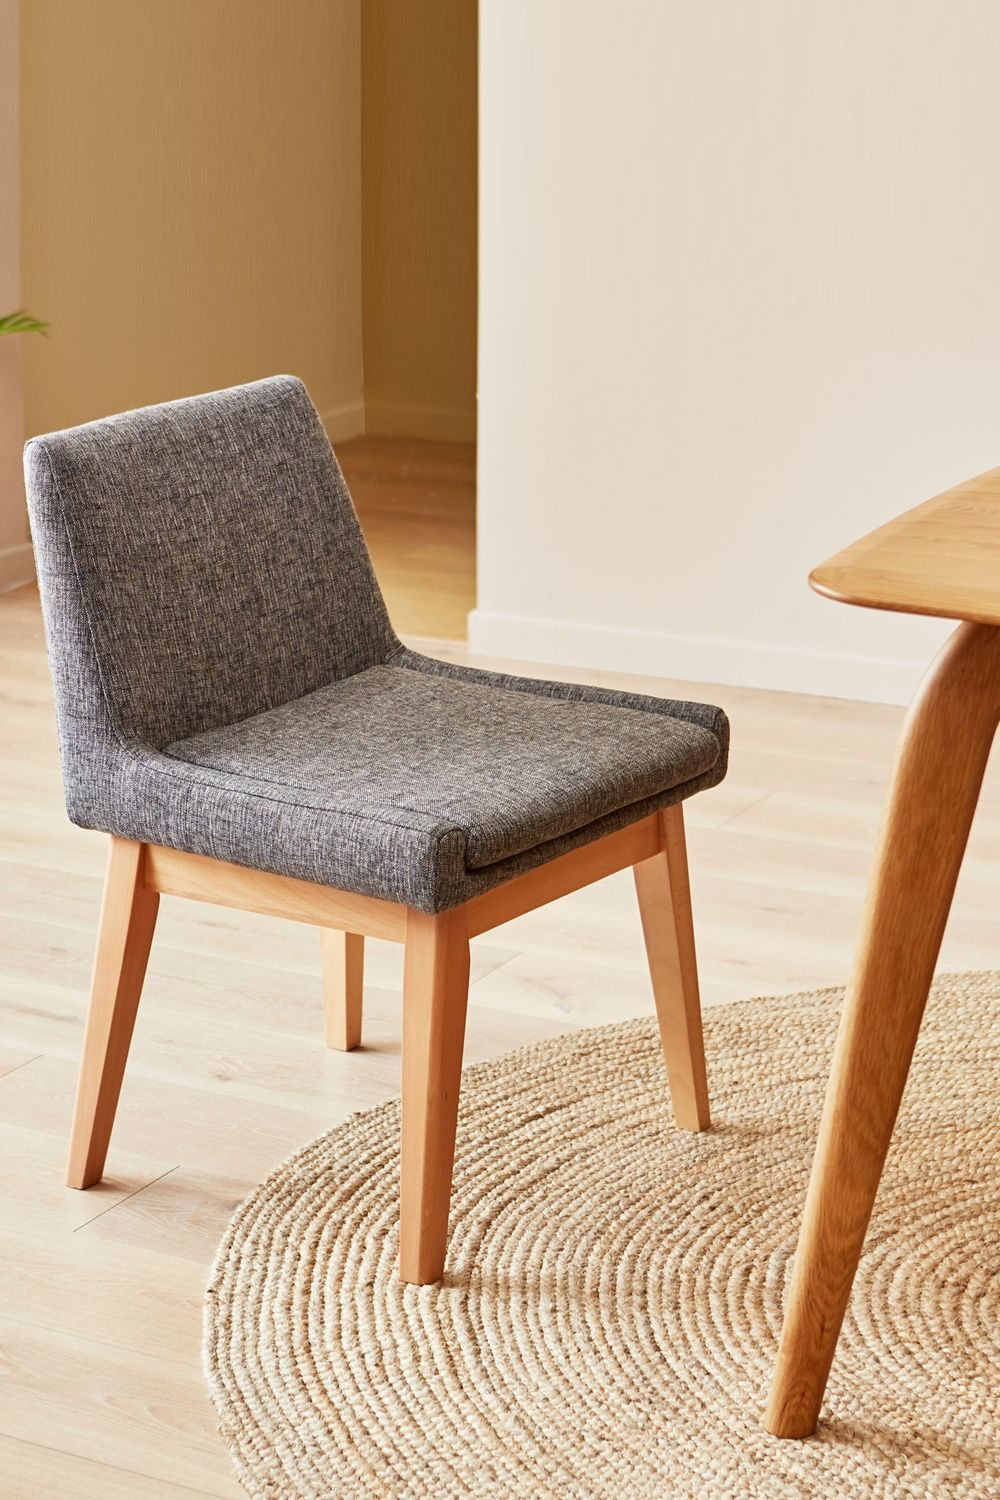 The Lewis Armless Chair Is Striking And Sophisticated With Sleek Structured Lines And A Low Back Sit On It Dining Chairs Dining Room Spaces Dining Chairs Buy